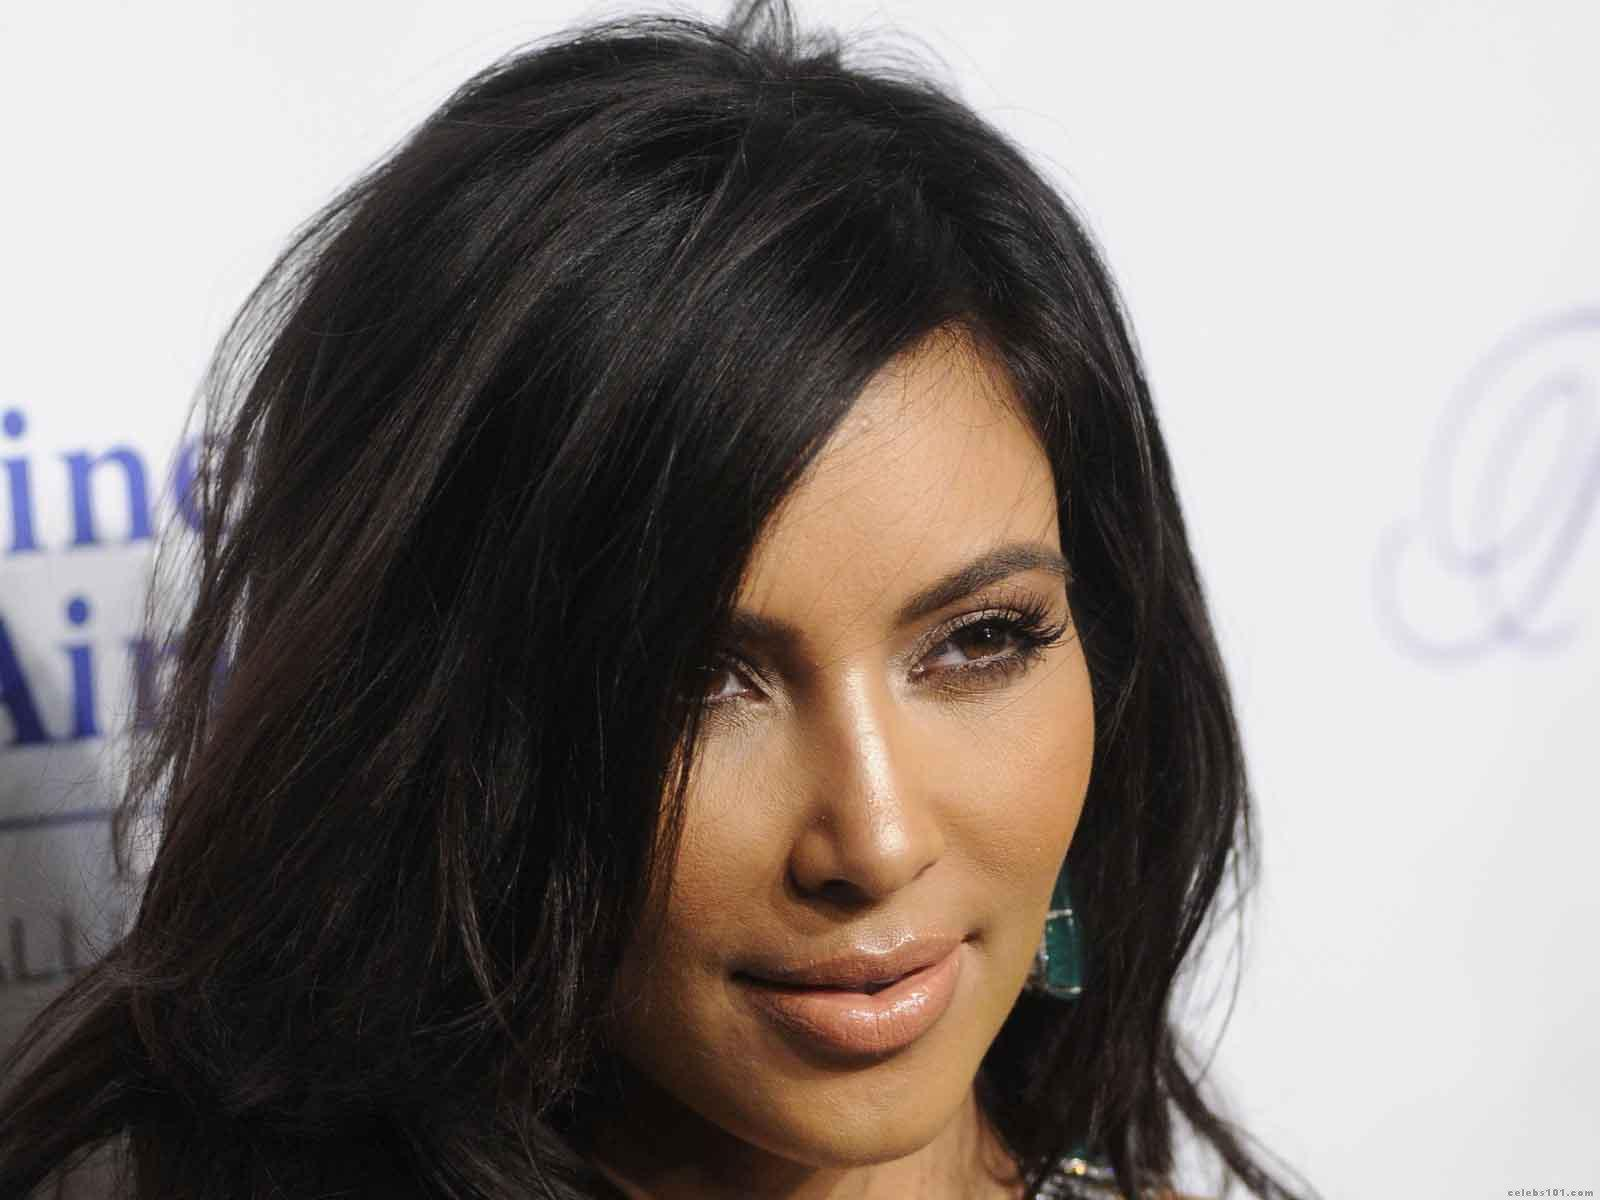 kimberly kardashian wallpaper kim kardashian wallpaper 1600x1200